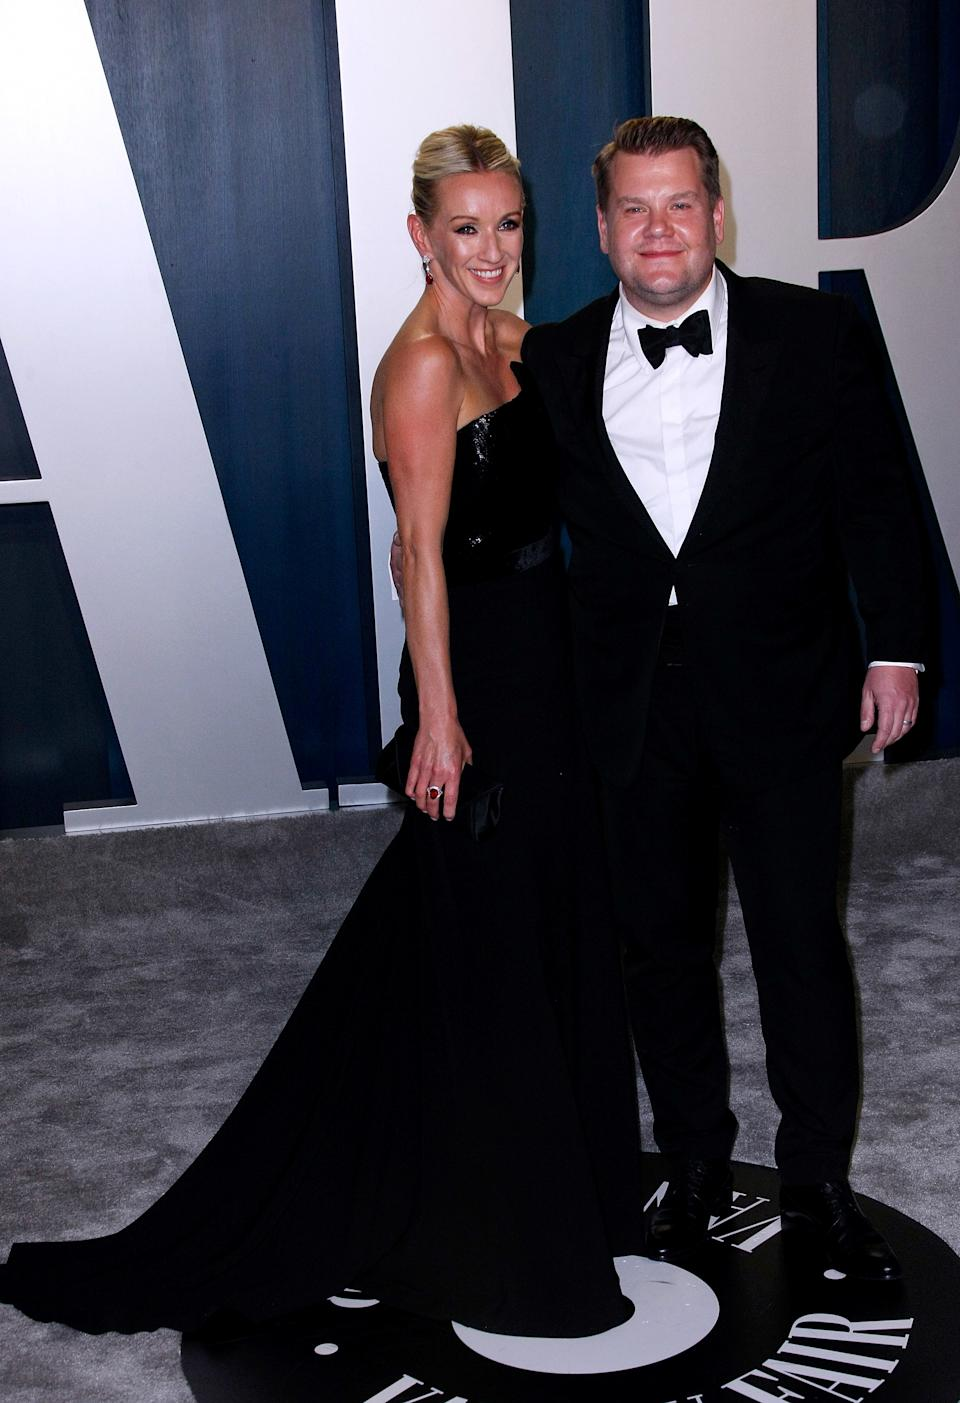 BEVERLY HILLS, CALIFORNIA - FEBRUARY 9: James Corden, Julia Carey attend the 2020 Vanity Fair Oscar Party at Wallis Annenberg Center for the Performing Arts on February 9, 2020 in Beverly Hills, California. Photo: CraSH/imageSPACE/Sipa USA